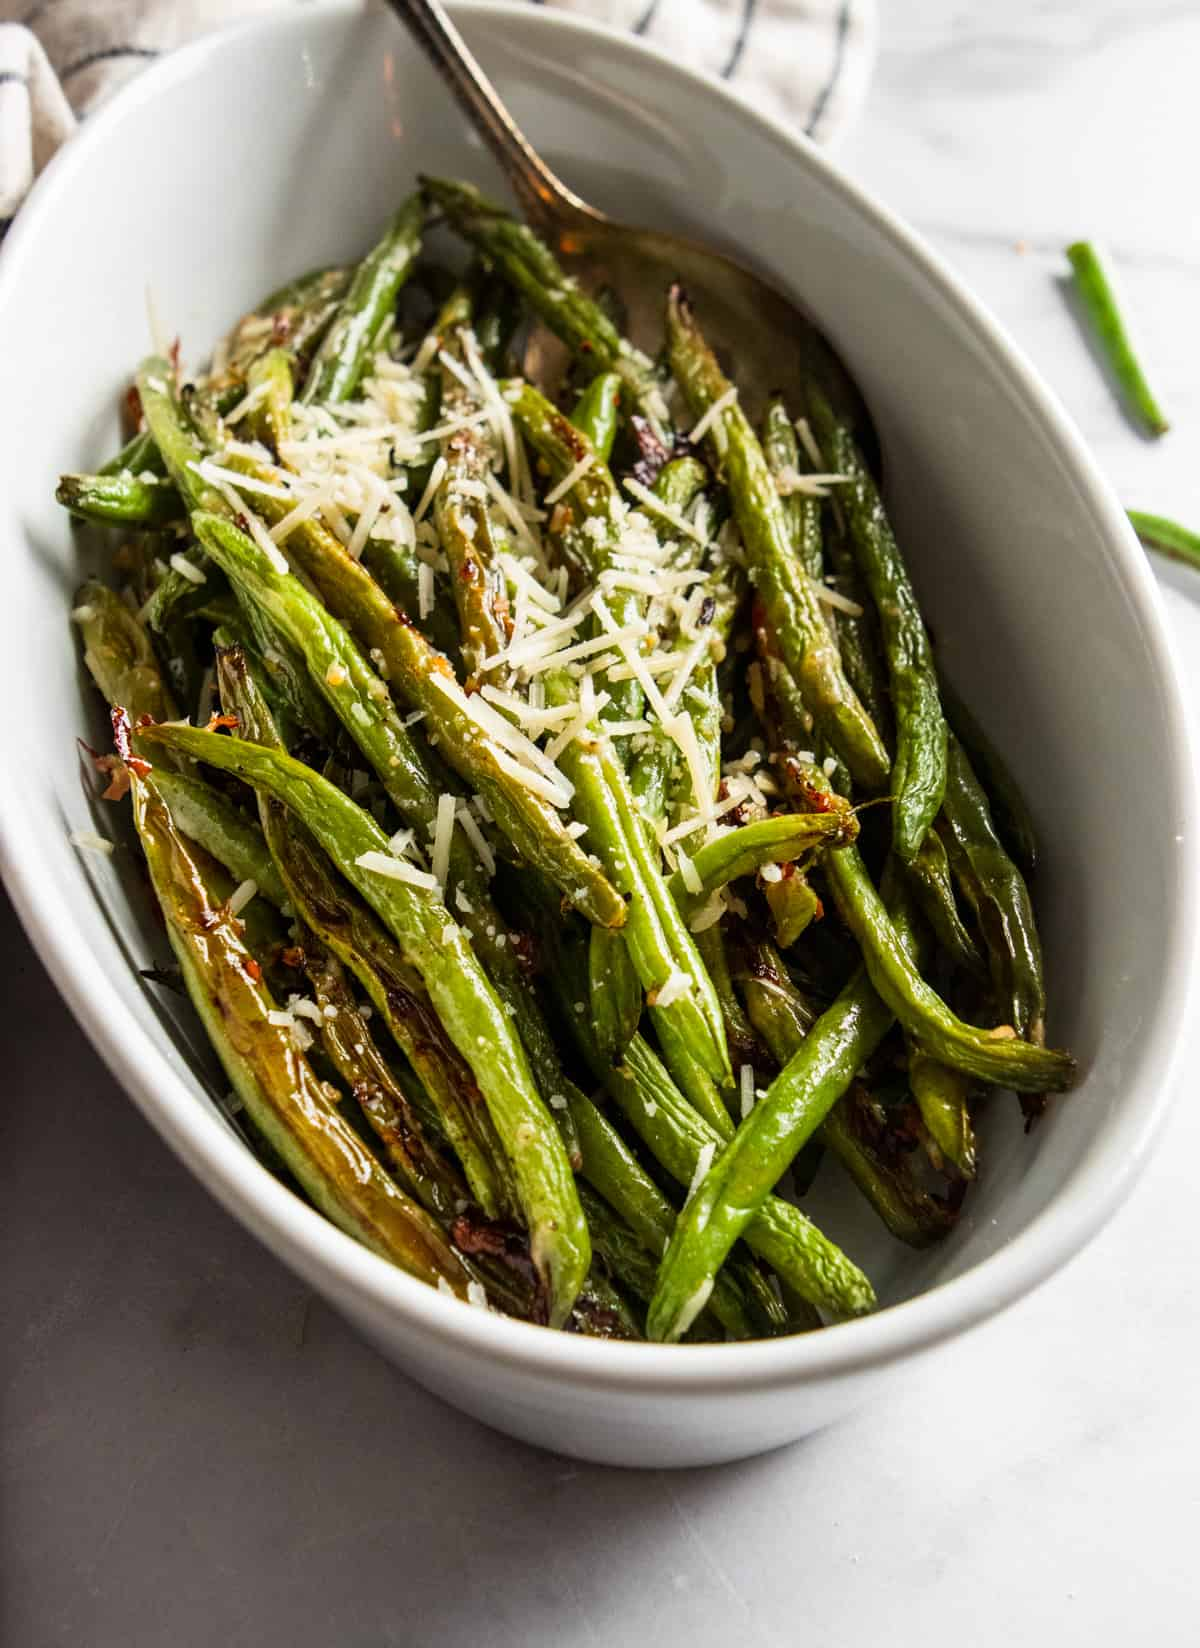 White serving bowl with roasted green beans.